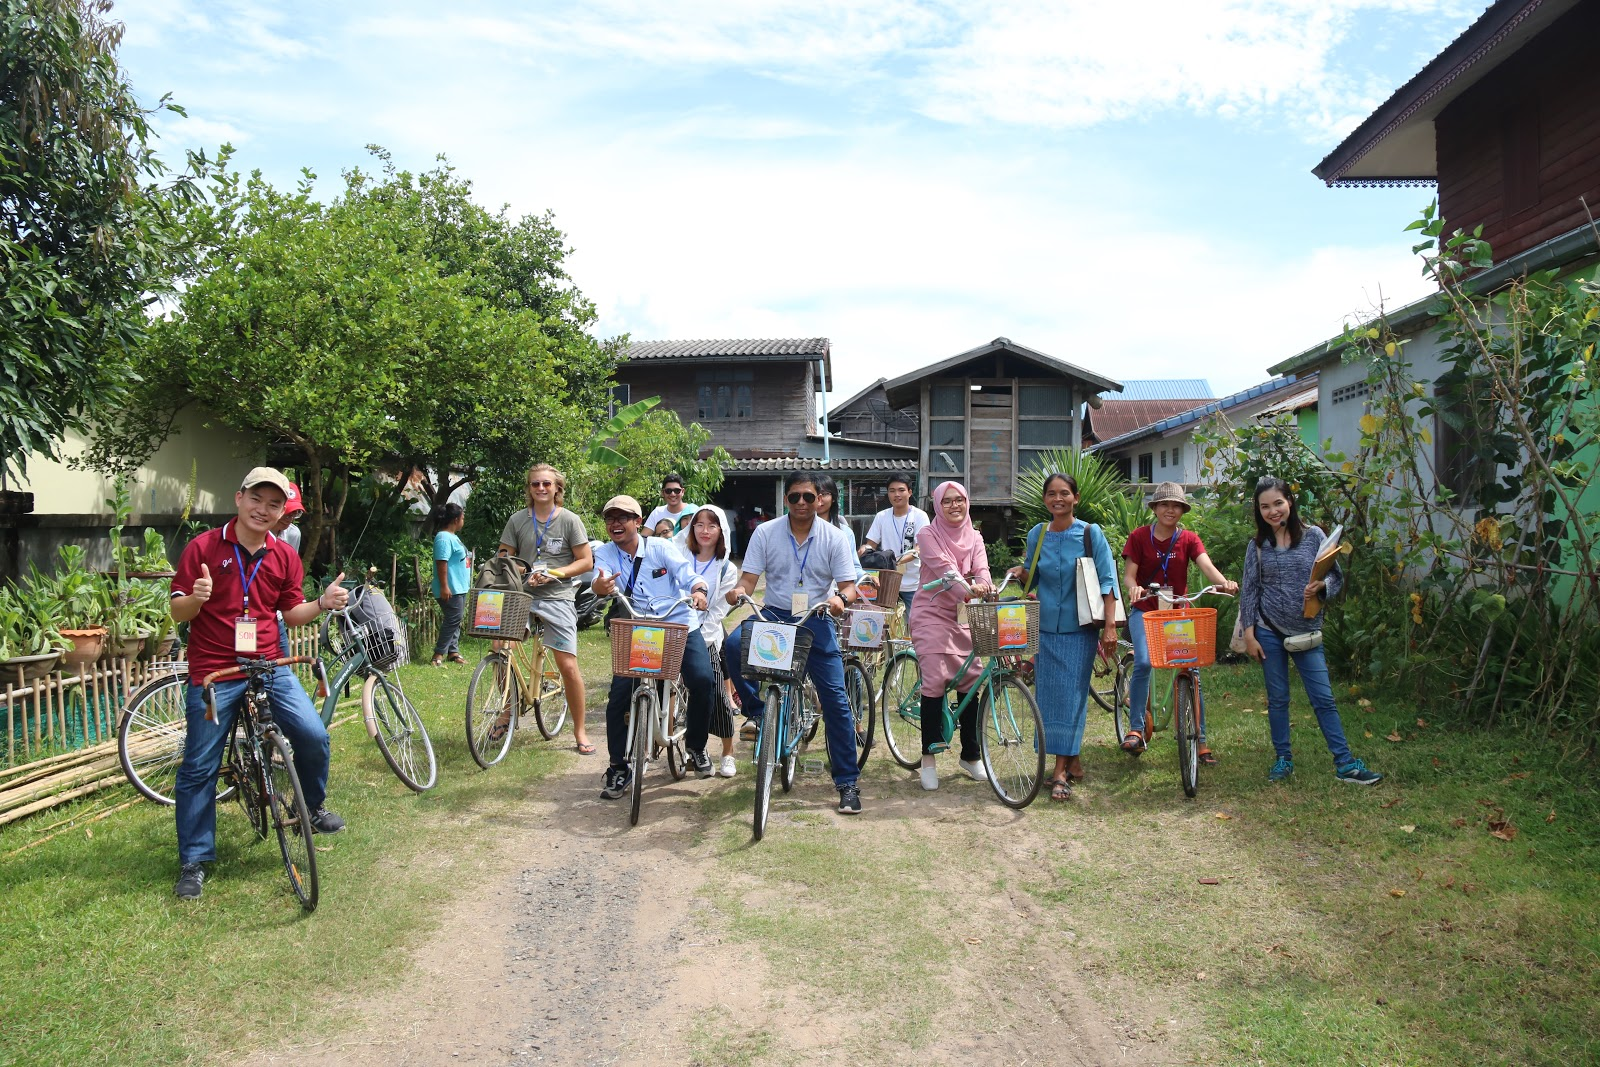 Explore Khon Kaen via bicycle